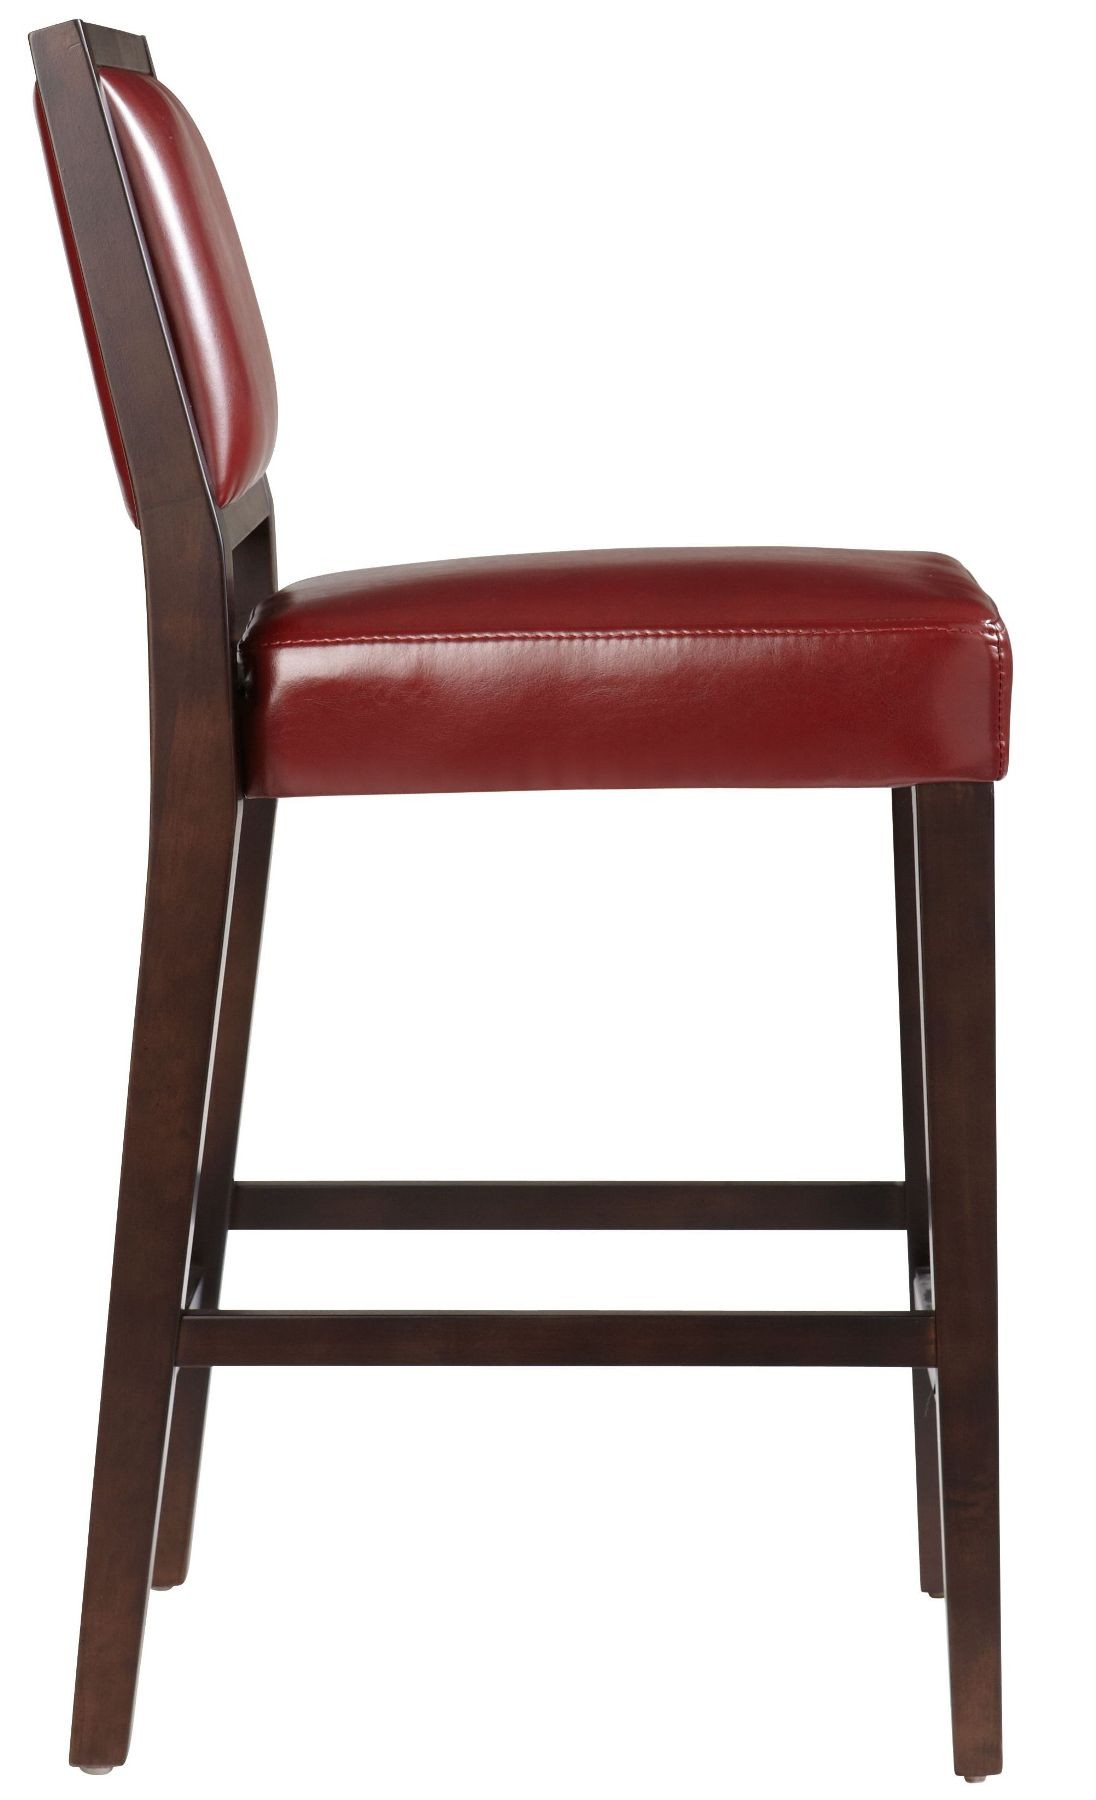 Citizen Oxblood Counter Stool From Sunpan 39054